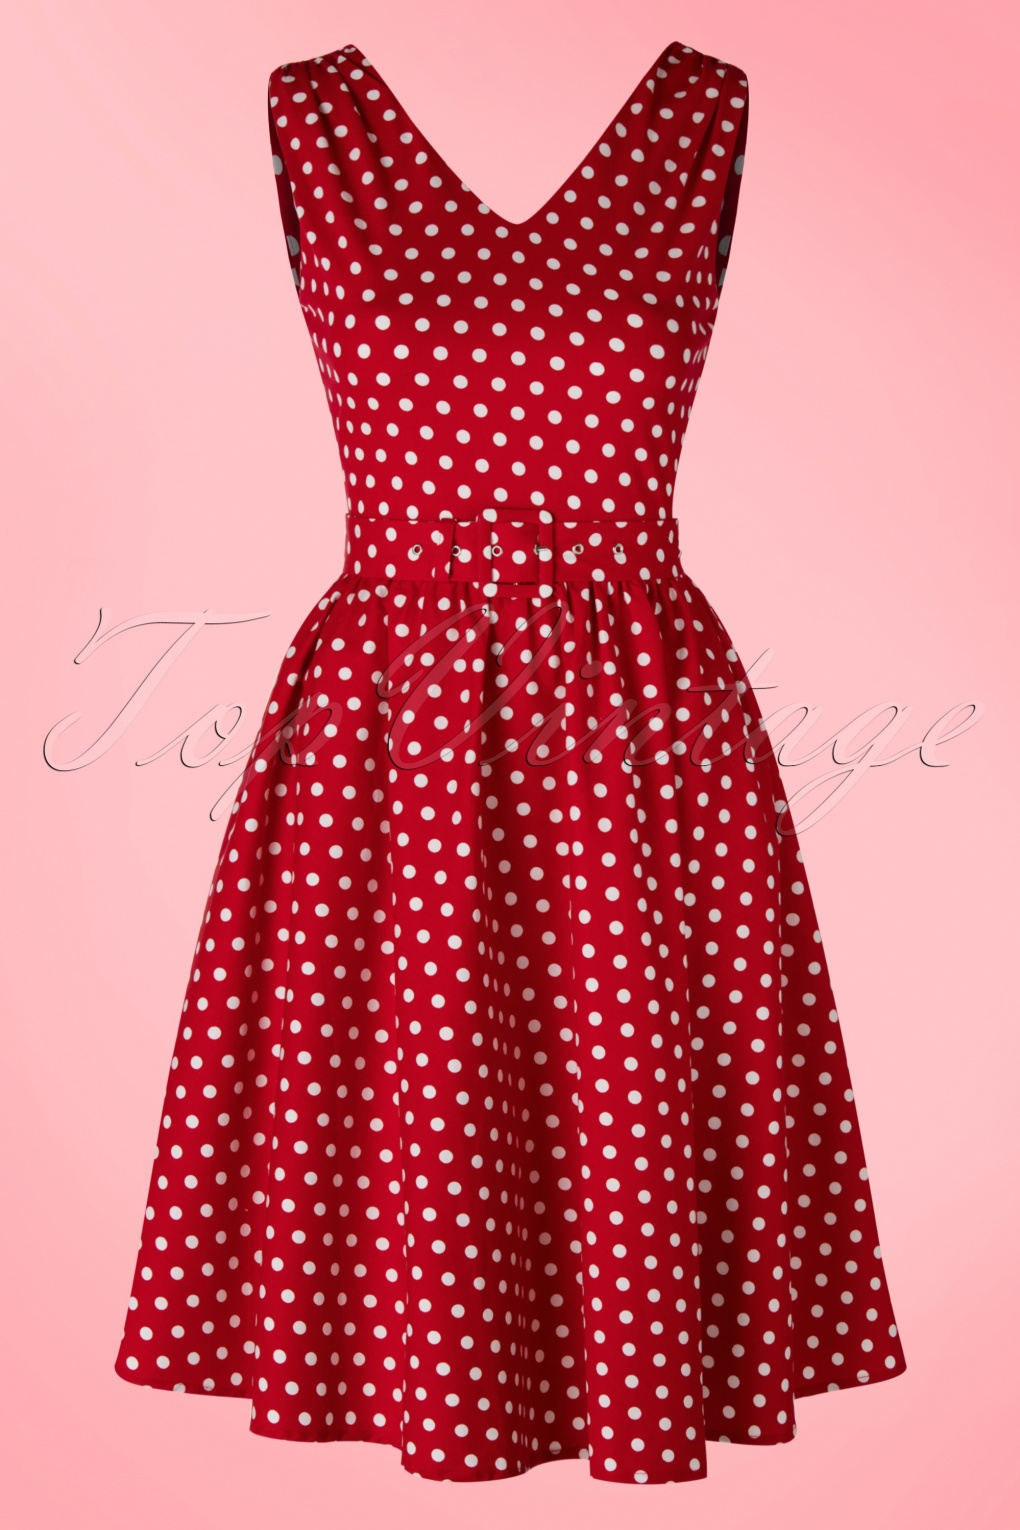 Retro 1950s Polka Dot Dresses For Sale